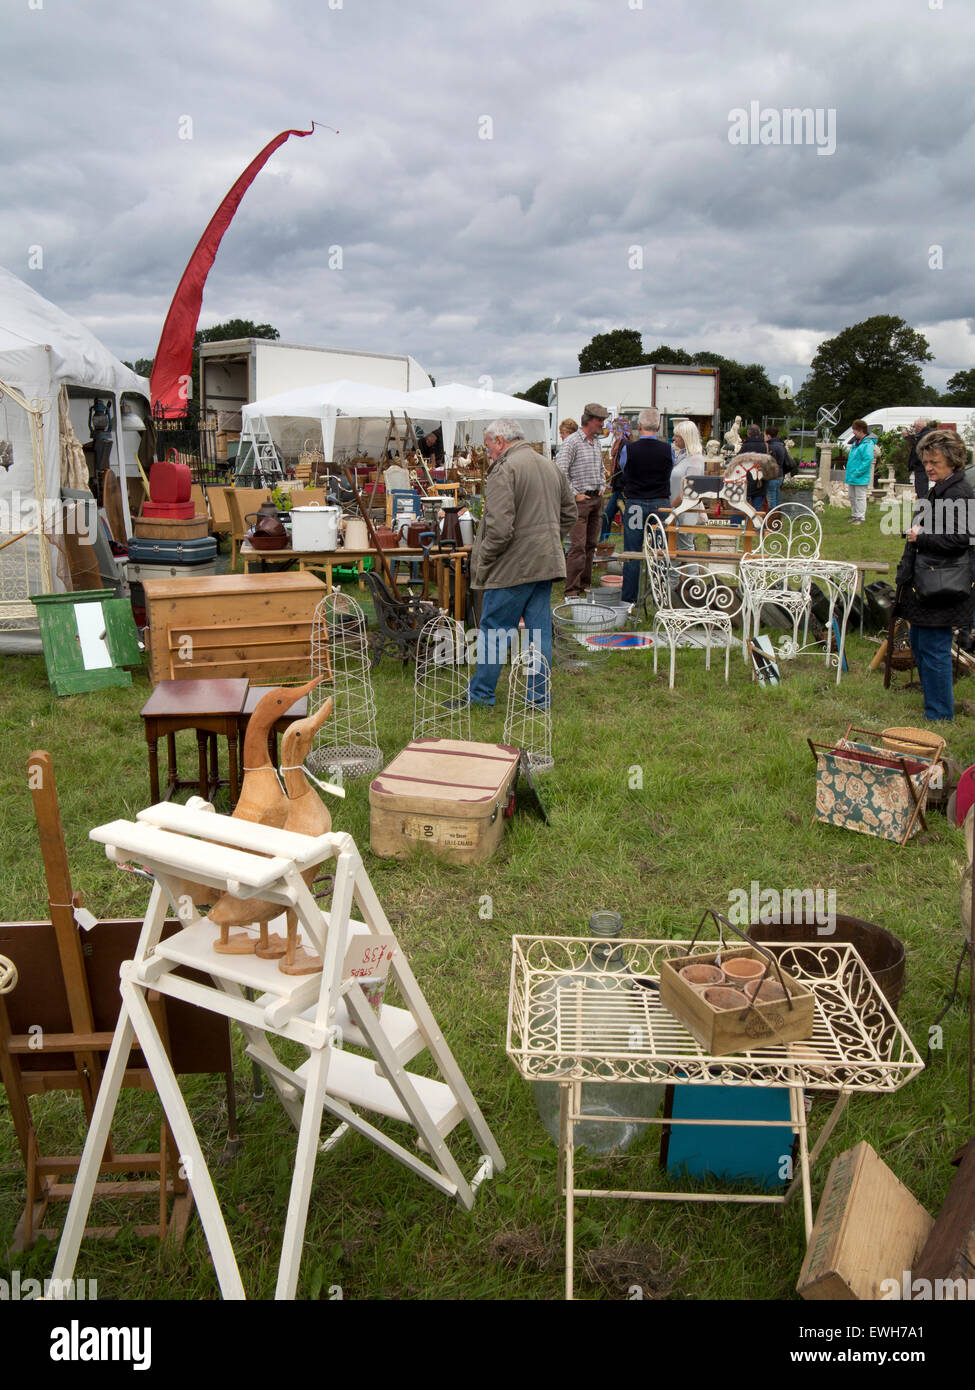 UK, England, Cheshire, Tabley, Cheshire Showground, Decorative Home & Salvage Show, stalls selling antiques - Stock Image